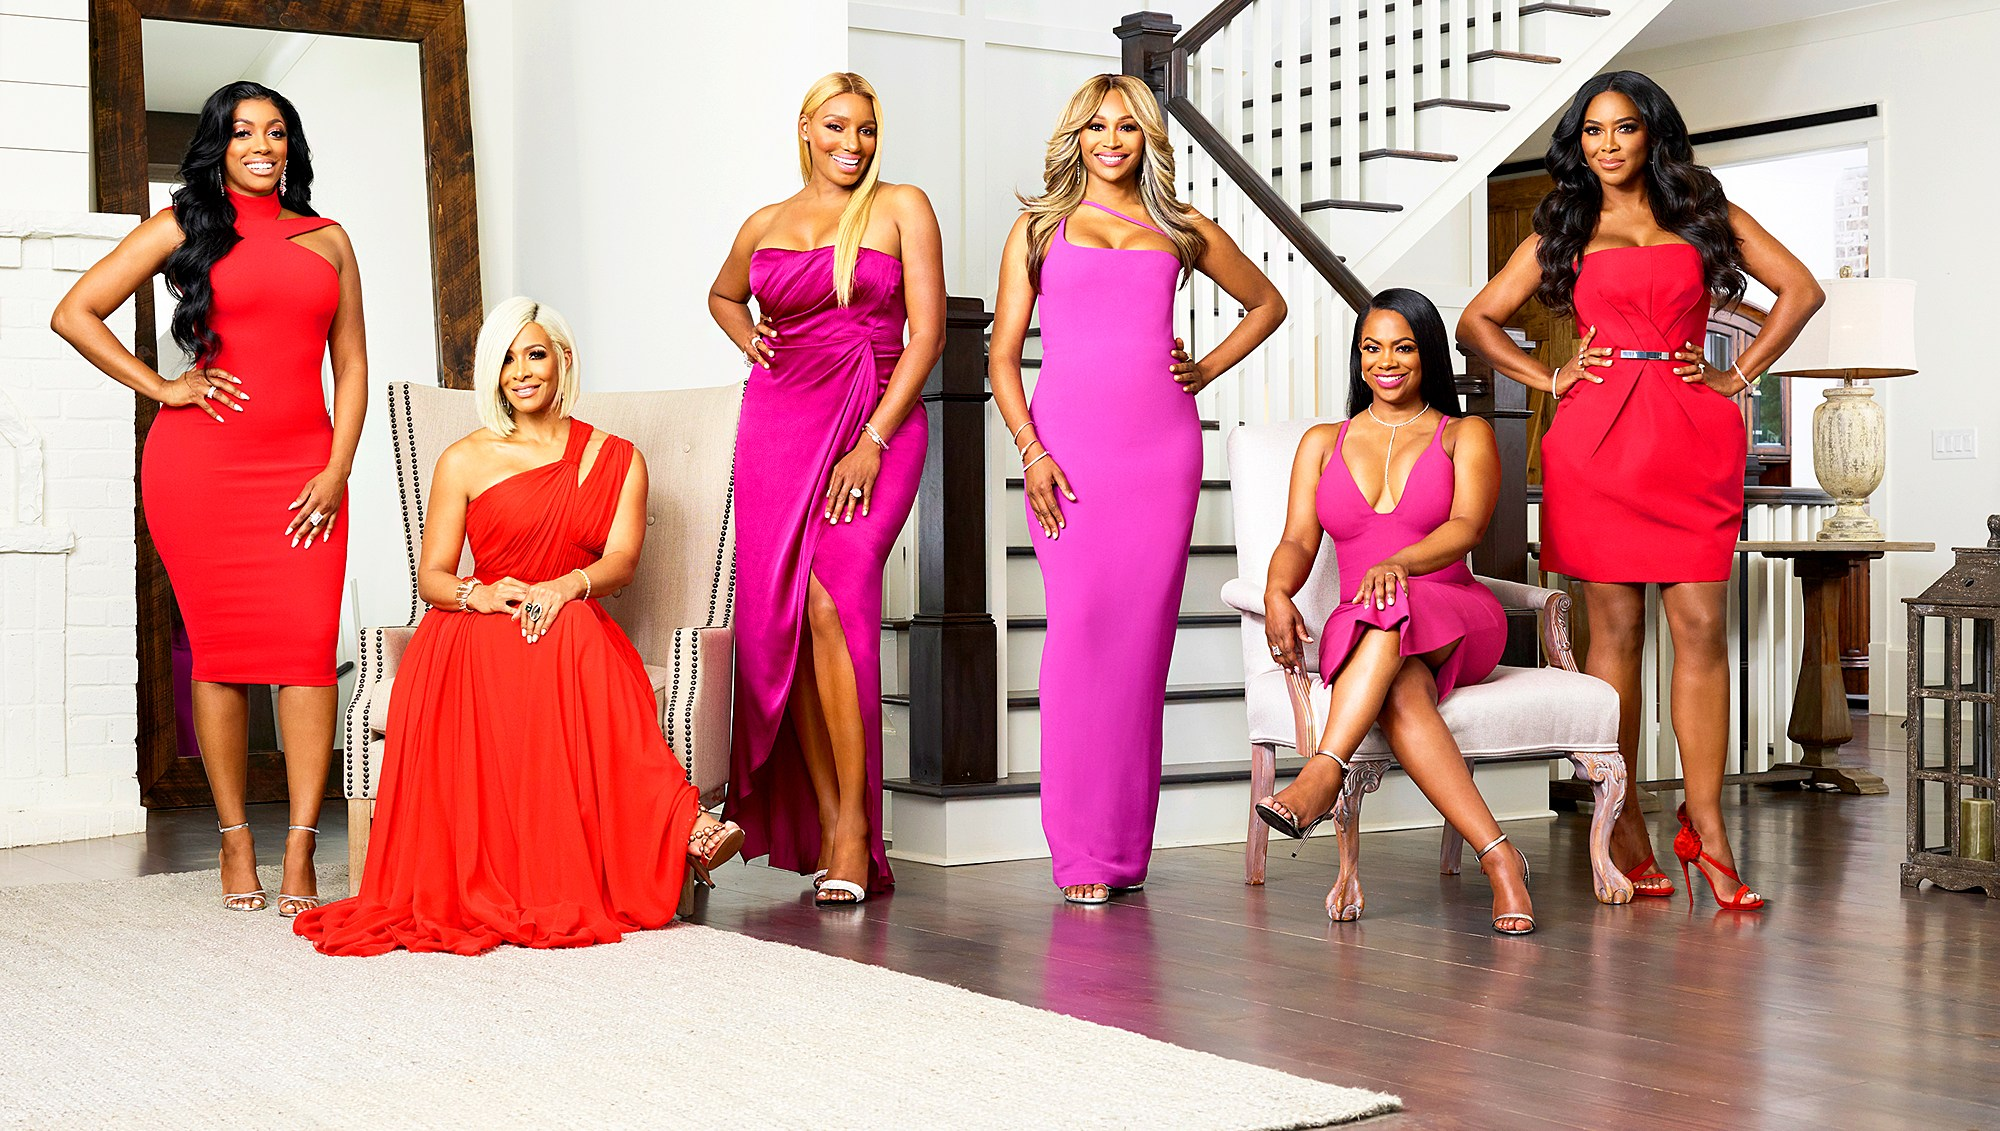 'Real Housewives of Atlanta' stars Porsha Williams, Sheree Whitfield, NeNe Leakes, Cynthia Bailey, Kandi Burruss and Kenya Moore